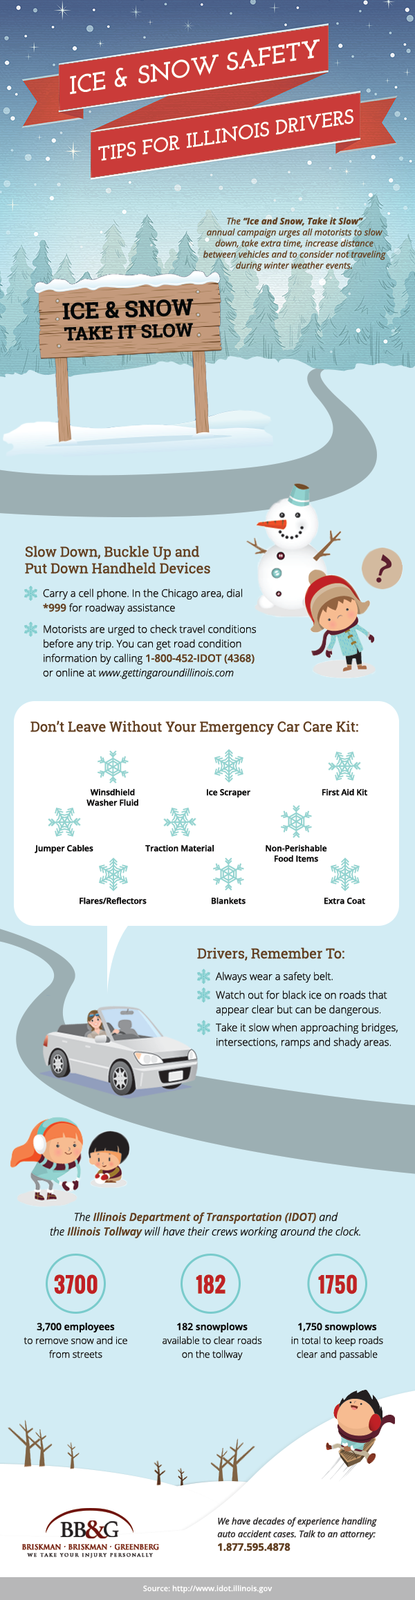 Briskman Briskman & Greenberg released this infographic and a safety video to help motorist stay safe this holiday season.